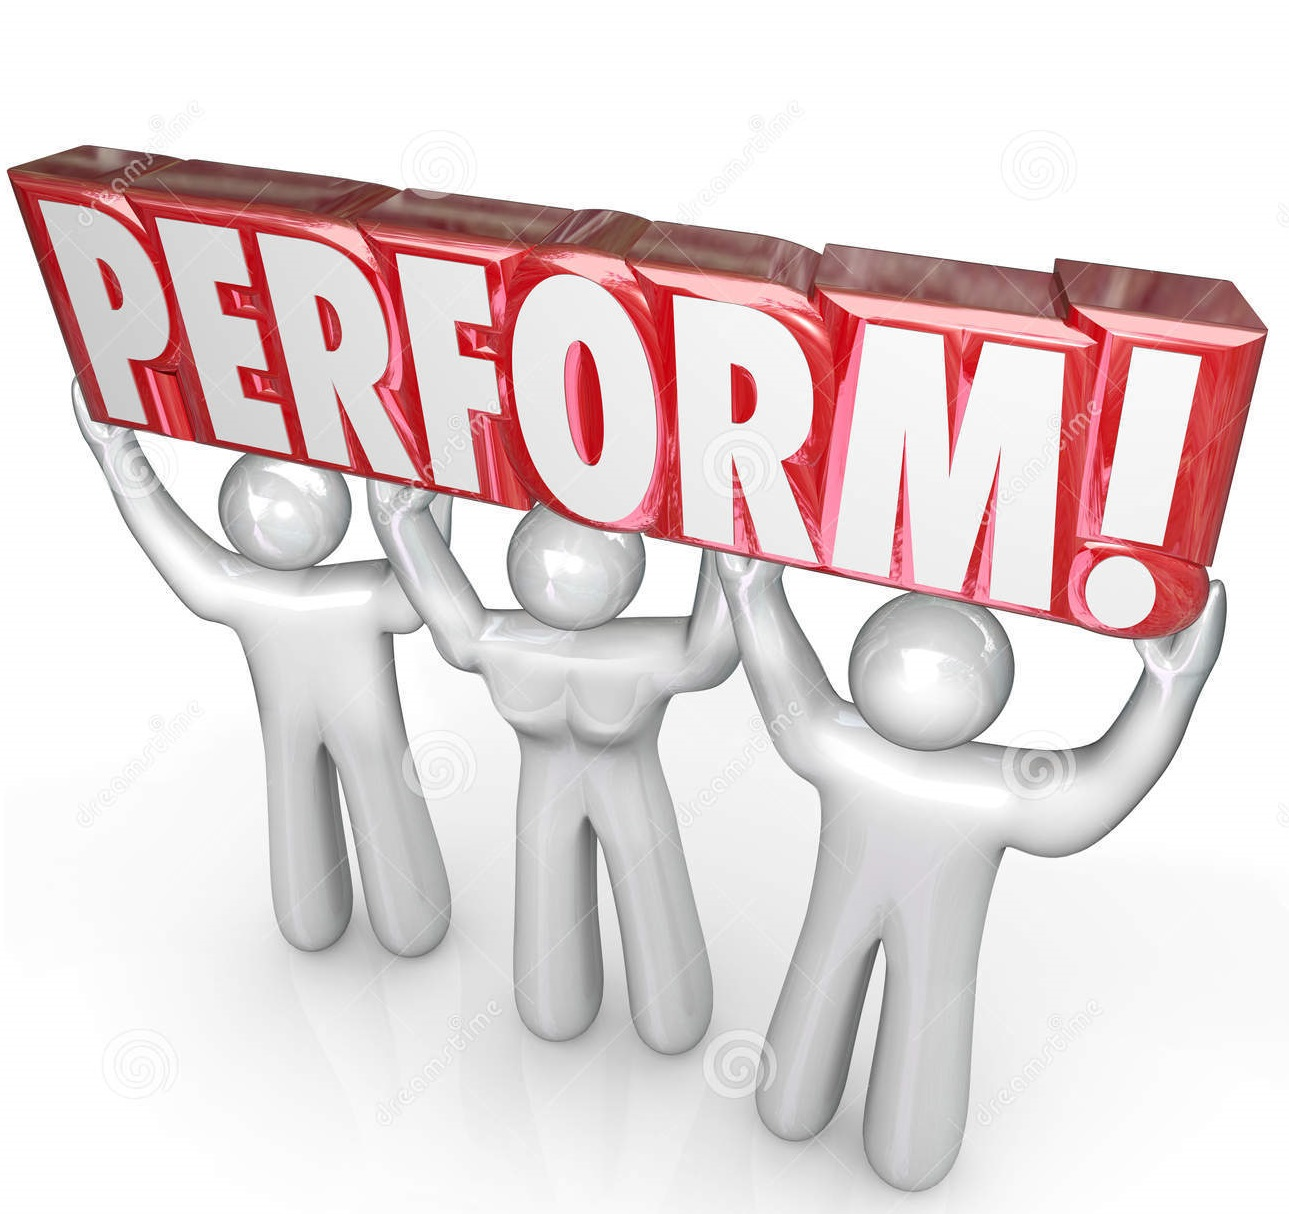 perform-people-lifting-words-take-action-implement-job-task-word-lifted-three-team-to-illustrate-performance-36679225